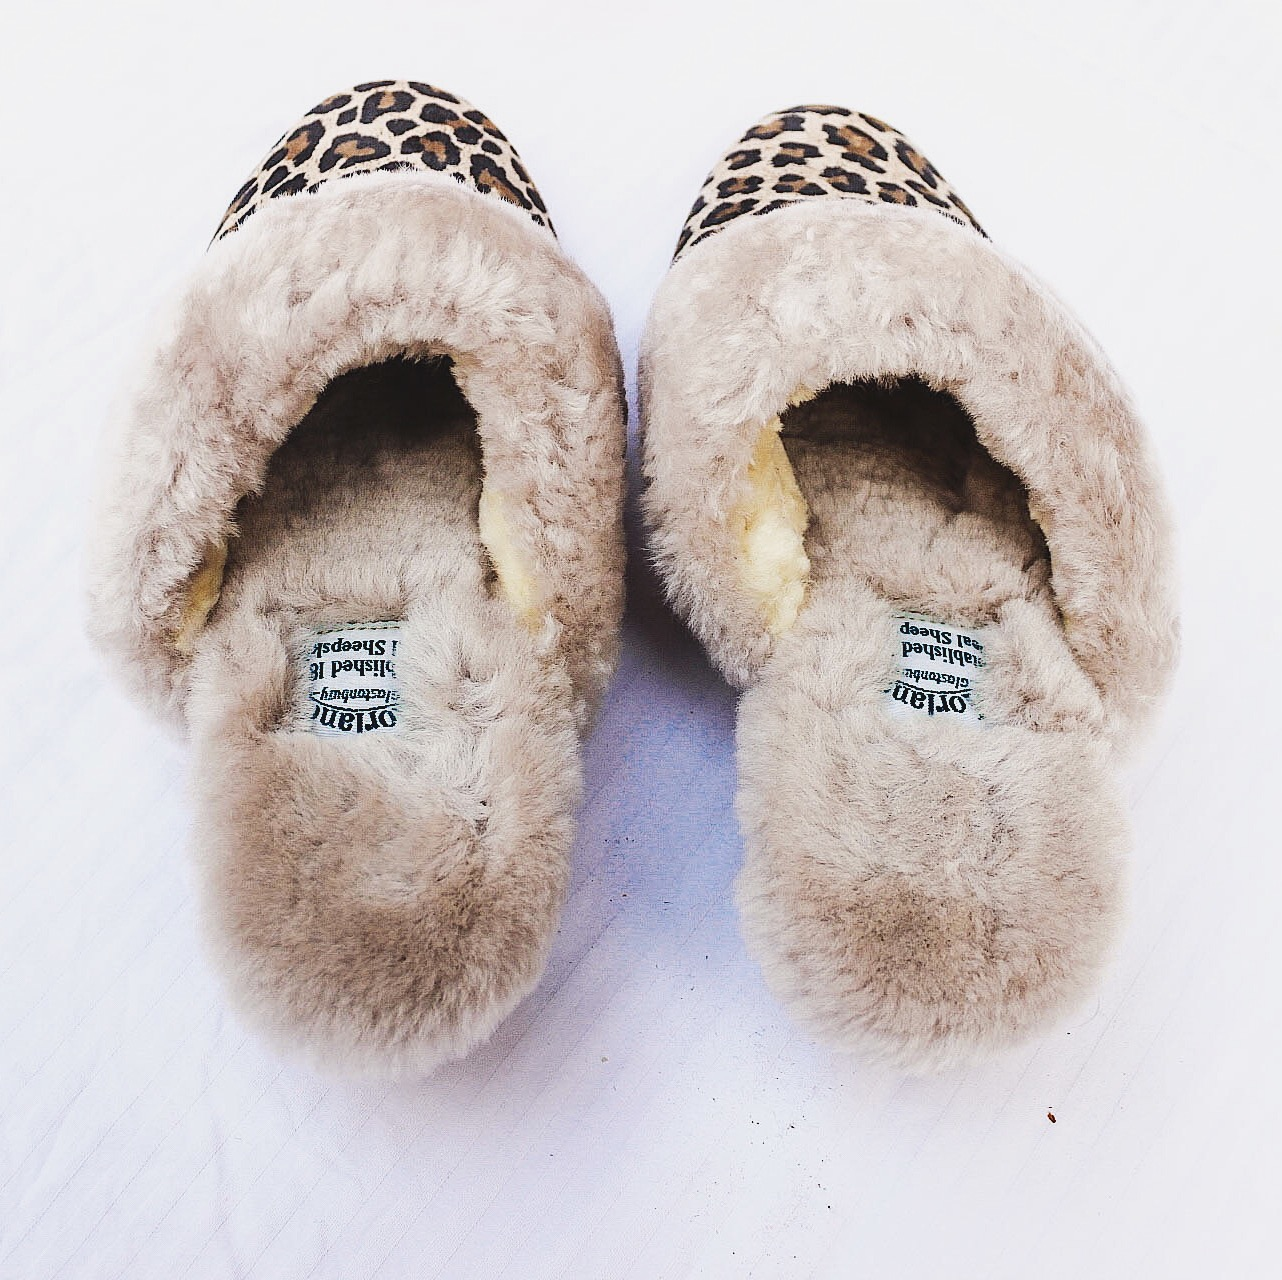 morlands slippers, morlandssheepskin, morlands glastonbury, morlands review, morlands slipper review, how to keep warm at home, how to keep warm, winter tips, cosy winter, keep warm tips, cope with winter, uk blog, london blog, top indian blog, indian luxury blog,